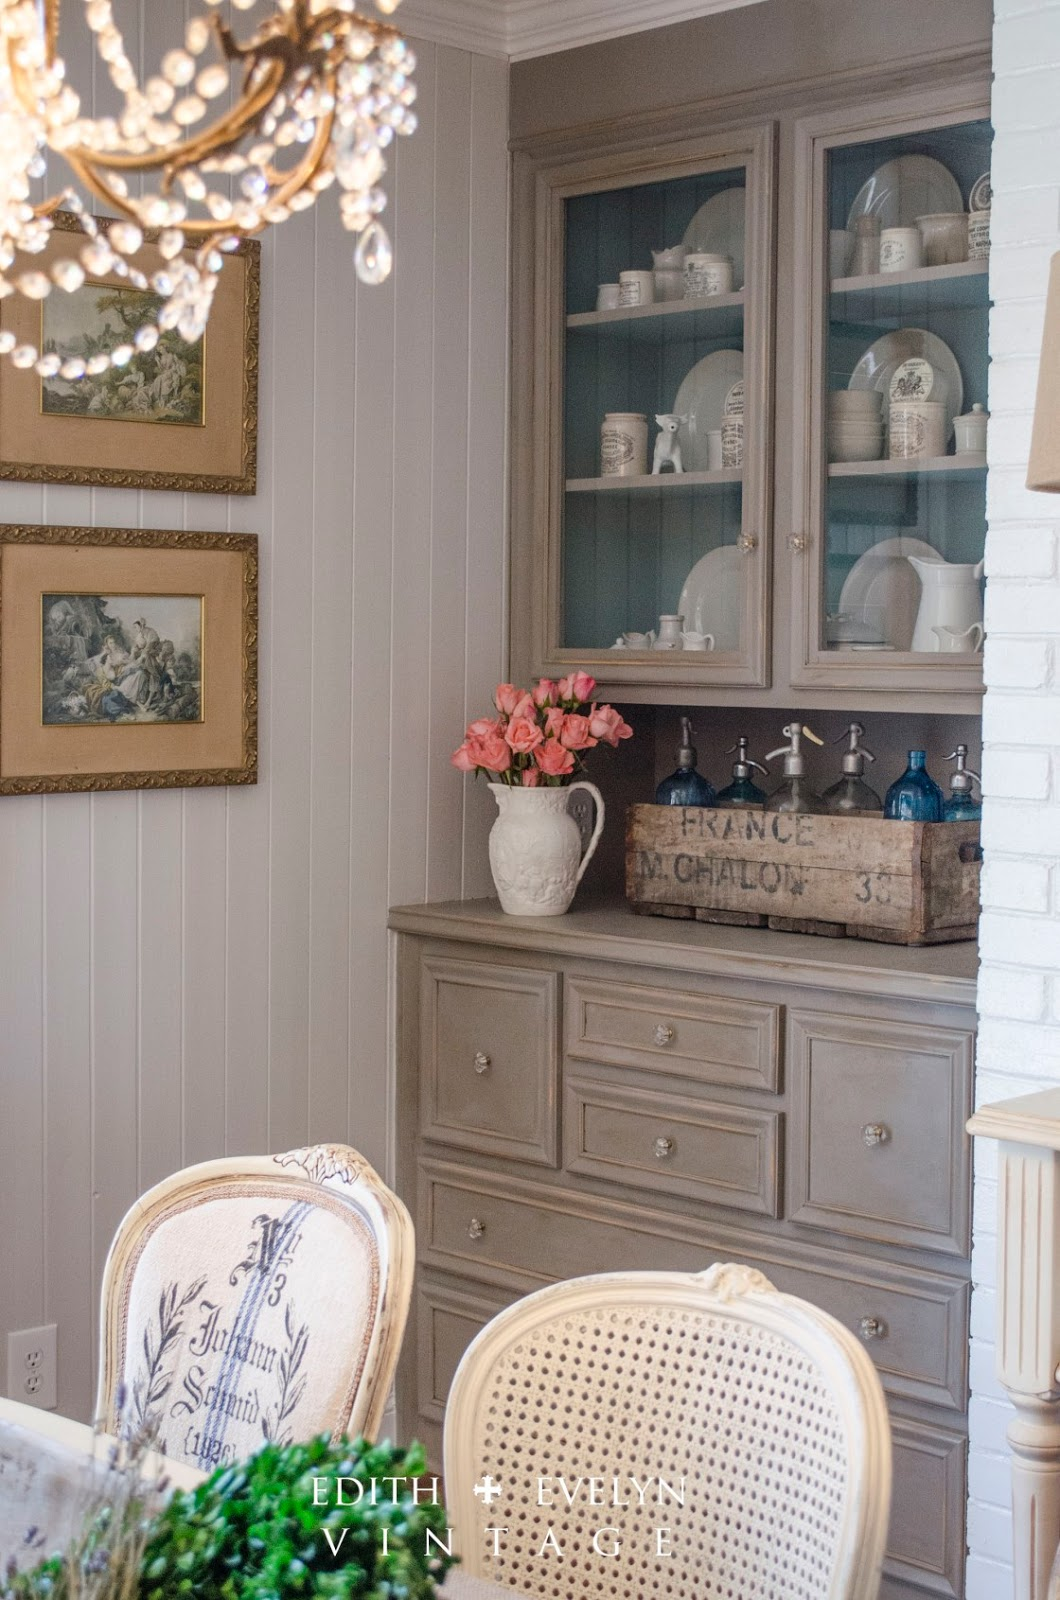 Love this beautiful home that's decorated in vintage French chateau style!